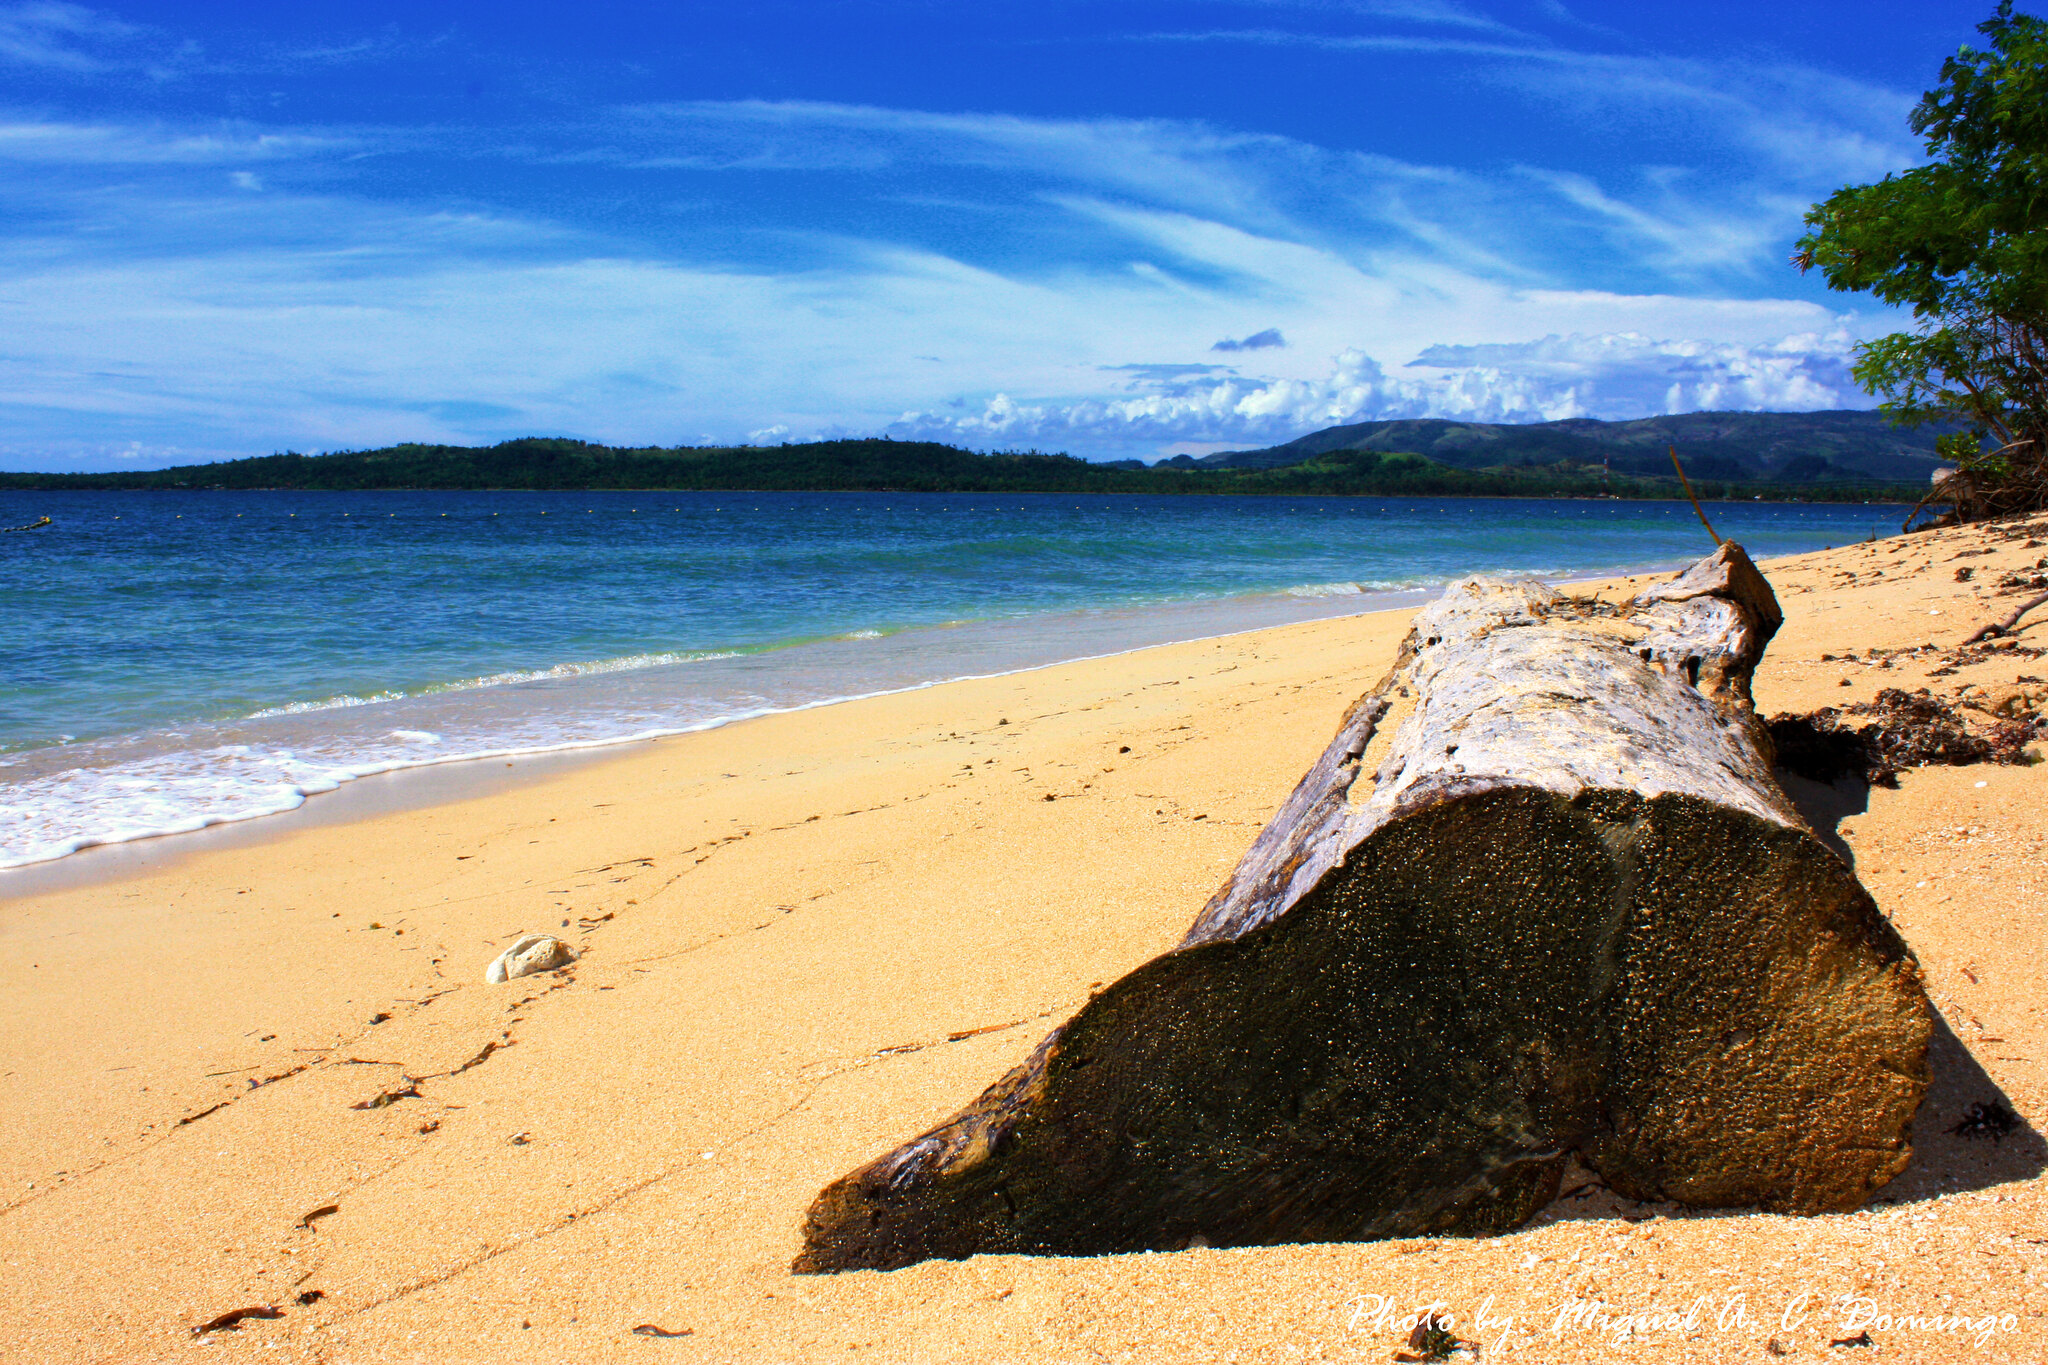 Travel Guide to Potipot Island, Zambales, Philippines with DIY Itinerary 02